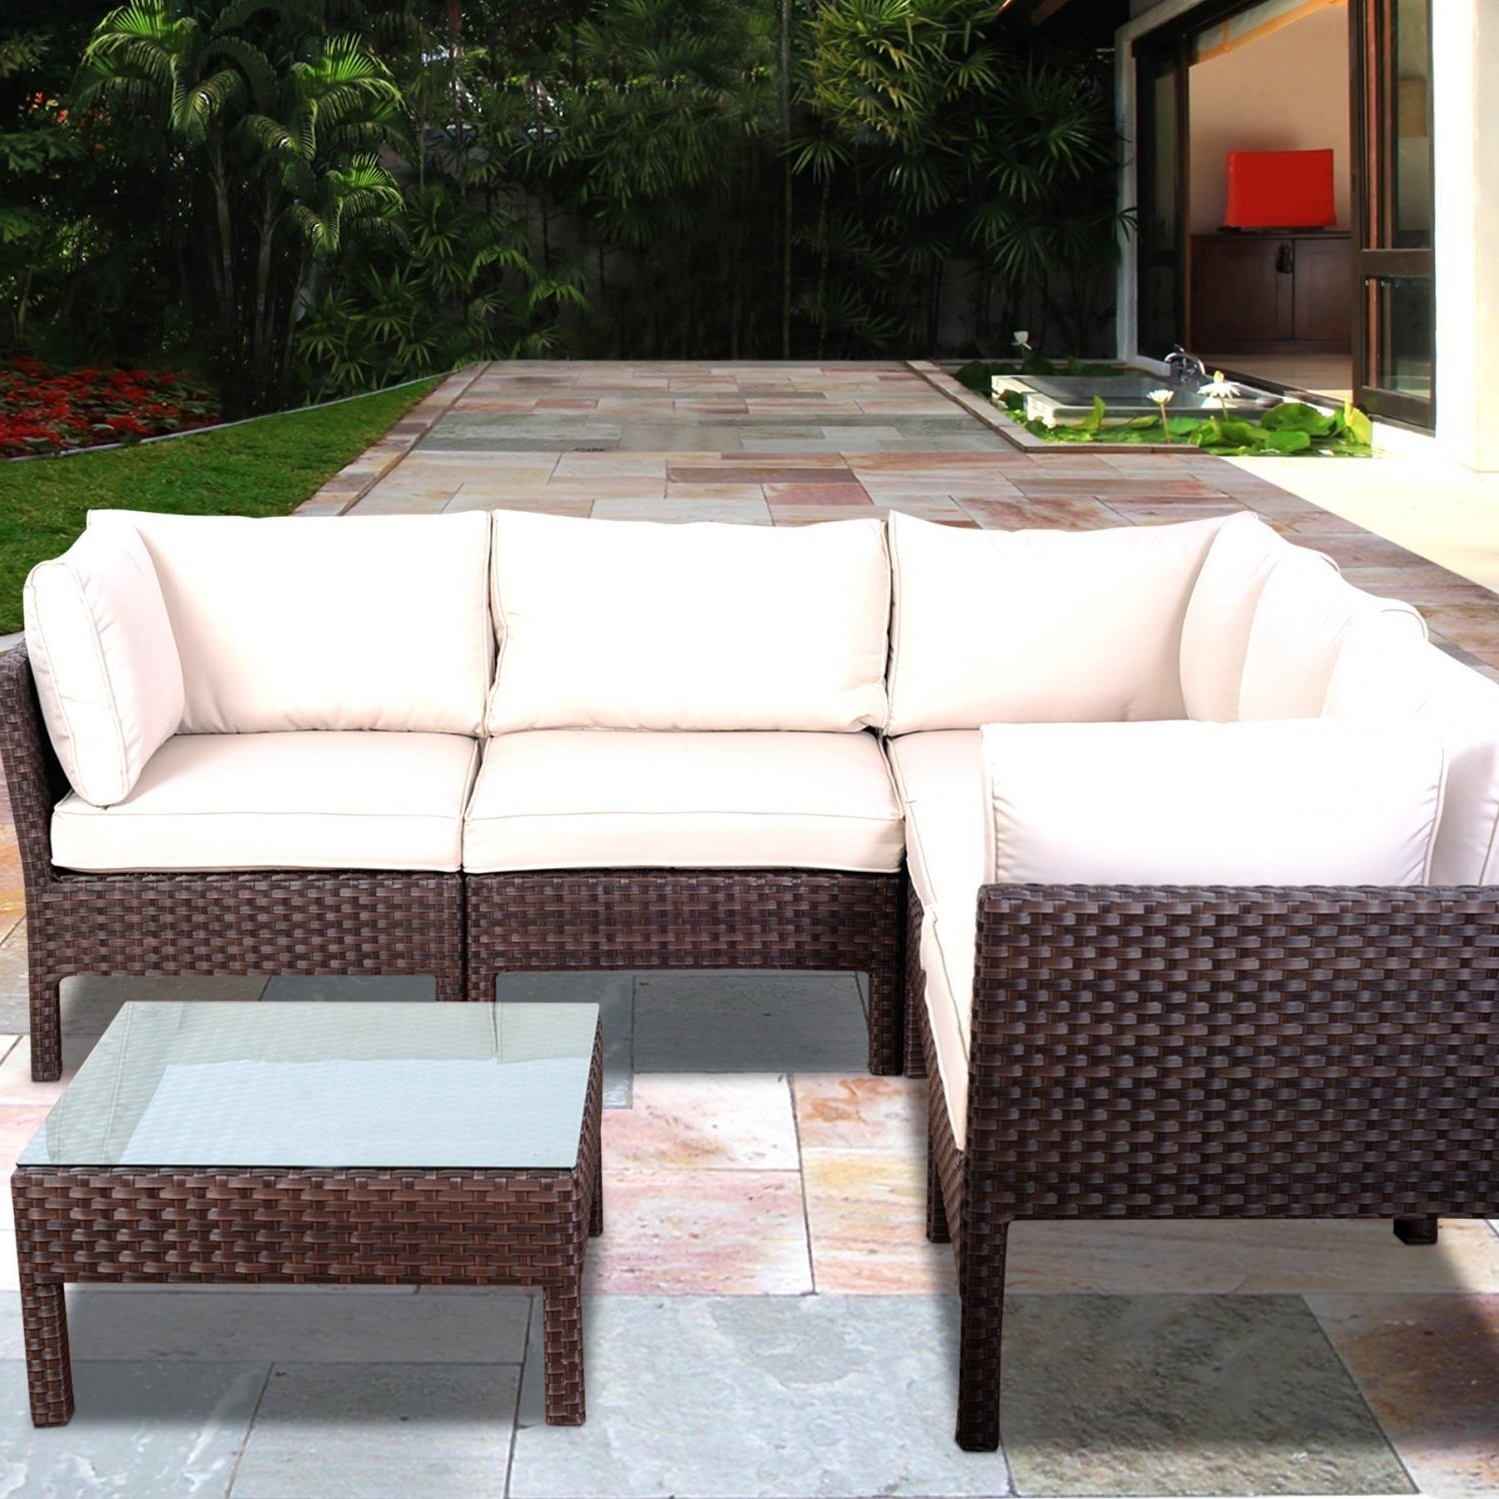 Well Known Conversation Patio Sets With Outdoor Sectionals Regarding Atlantic Infinity 5 Person Resin Wicker Patio Sectional Set (View 11 of 15)